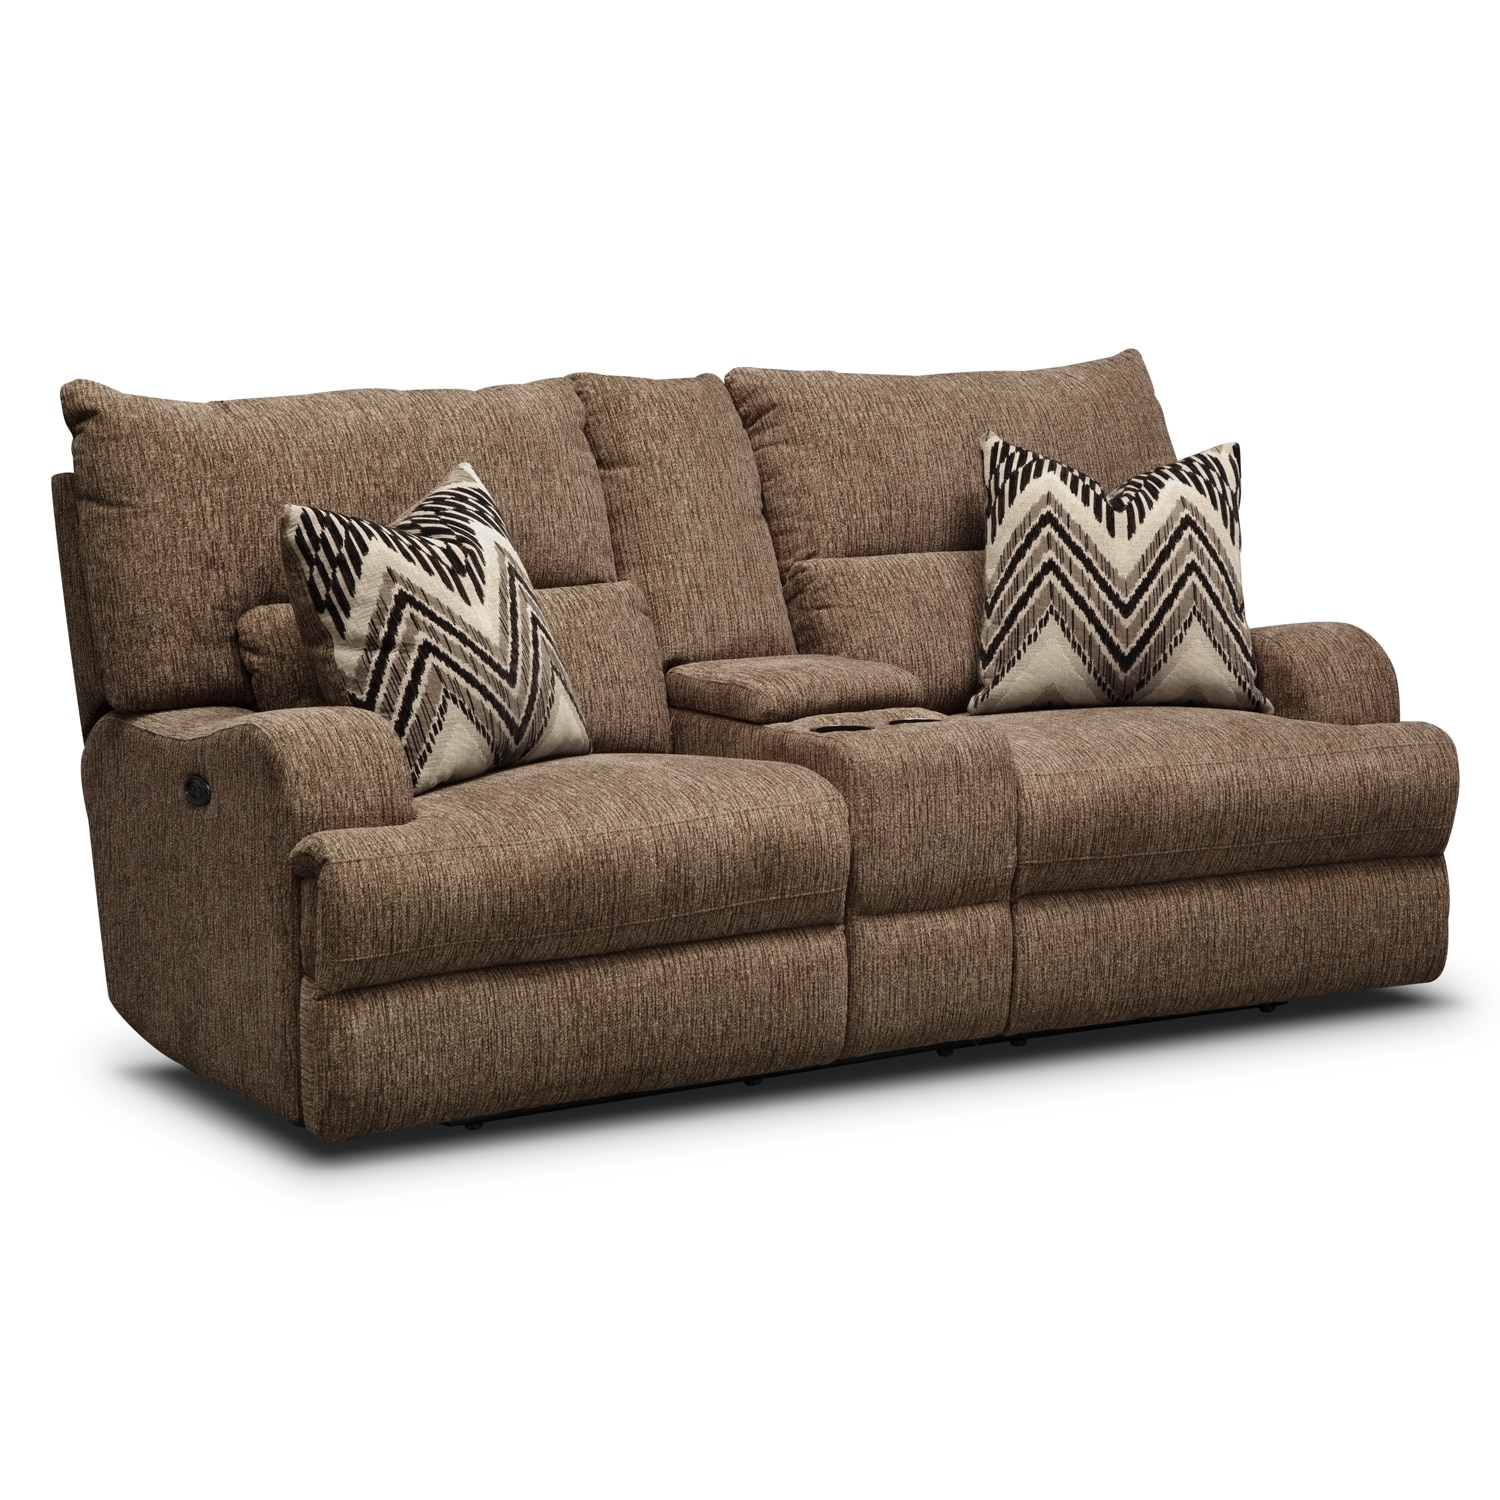 Blue La-Z-Time Manual Reclining Loveseat with Middle Console